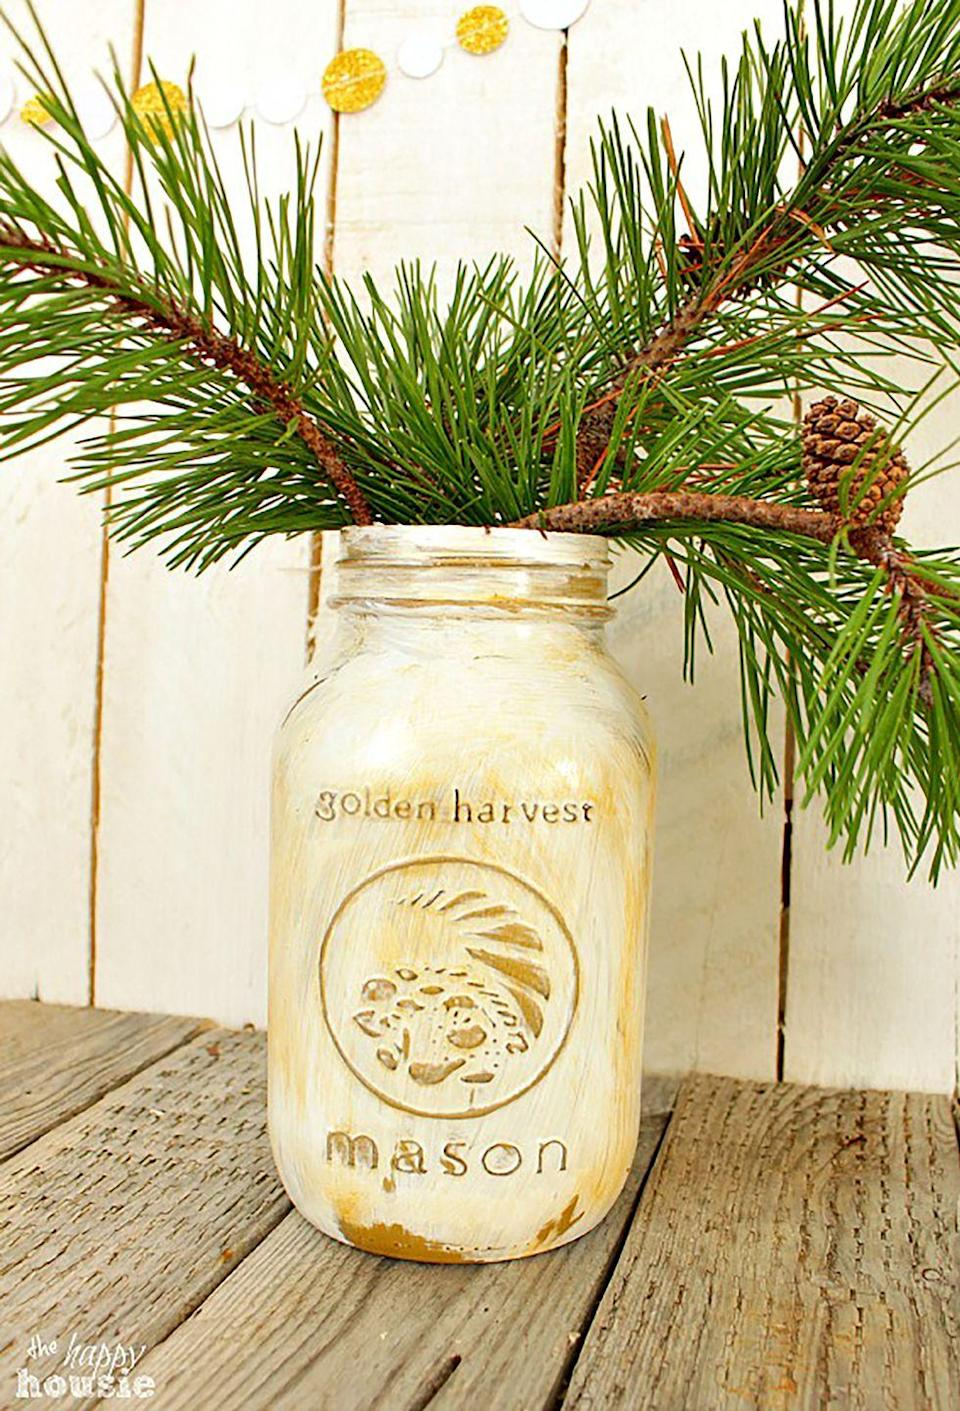 """<p>Use gold spray-paint, gold wax, and white Chalk Paint on your Mason jars to create a shining centerpiece you can use year after year. </p><p><strong>Get the tutorial at <a href=""""http://thehappyhousie.com/distressed-white-gold-mason-jars-for-your-holiday-table/"""" rel=""""nofollow noopener"""" target=""""_blank"""" data-ylk=""""slk:The Happy Housie"""" class=""""link rapid-noclick-resp"""">The Happy Housie</a>.</strong></p><p><a class=""""link rapid-noclick-resp"""" href=""""https://www.amazon.com/Krylon-KSCS029-Short-Aerosol-Spray/dp/B000GLHVIC/?tag=syn-yahoo-20&ascsubtag=%5Bartid%7C10050.g.2132%5Bsrc%7Cyahoo-us"""" rel=""""nofollow noopener"""" target=""""_blank"""" data-ylk=""""slk:SHOP GOLD SPRAY PAINT"""">SHOP GOLD SPRAY PAINT</a></p>"""